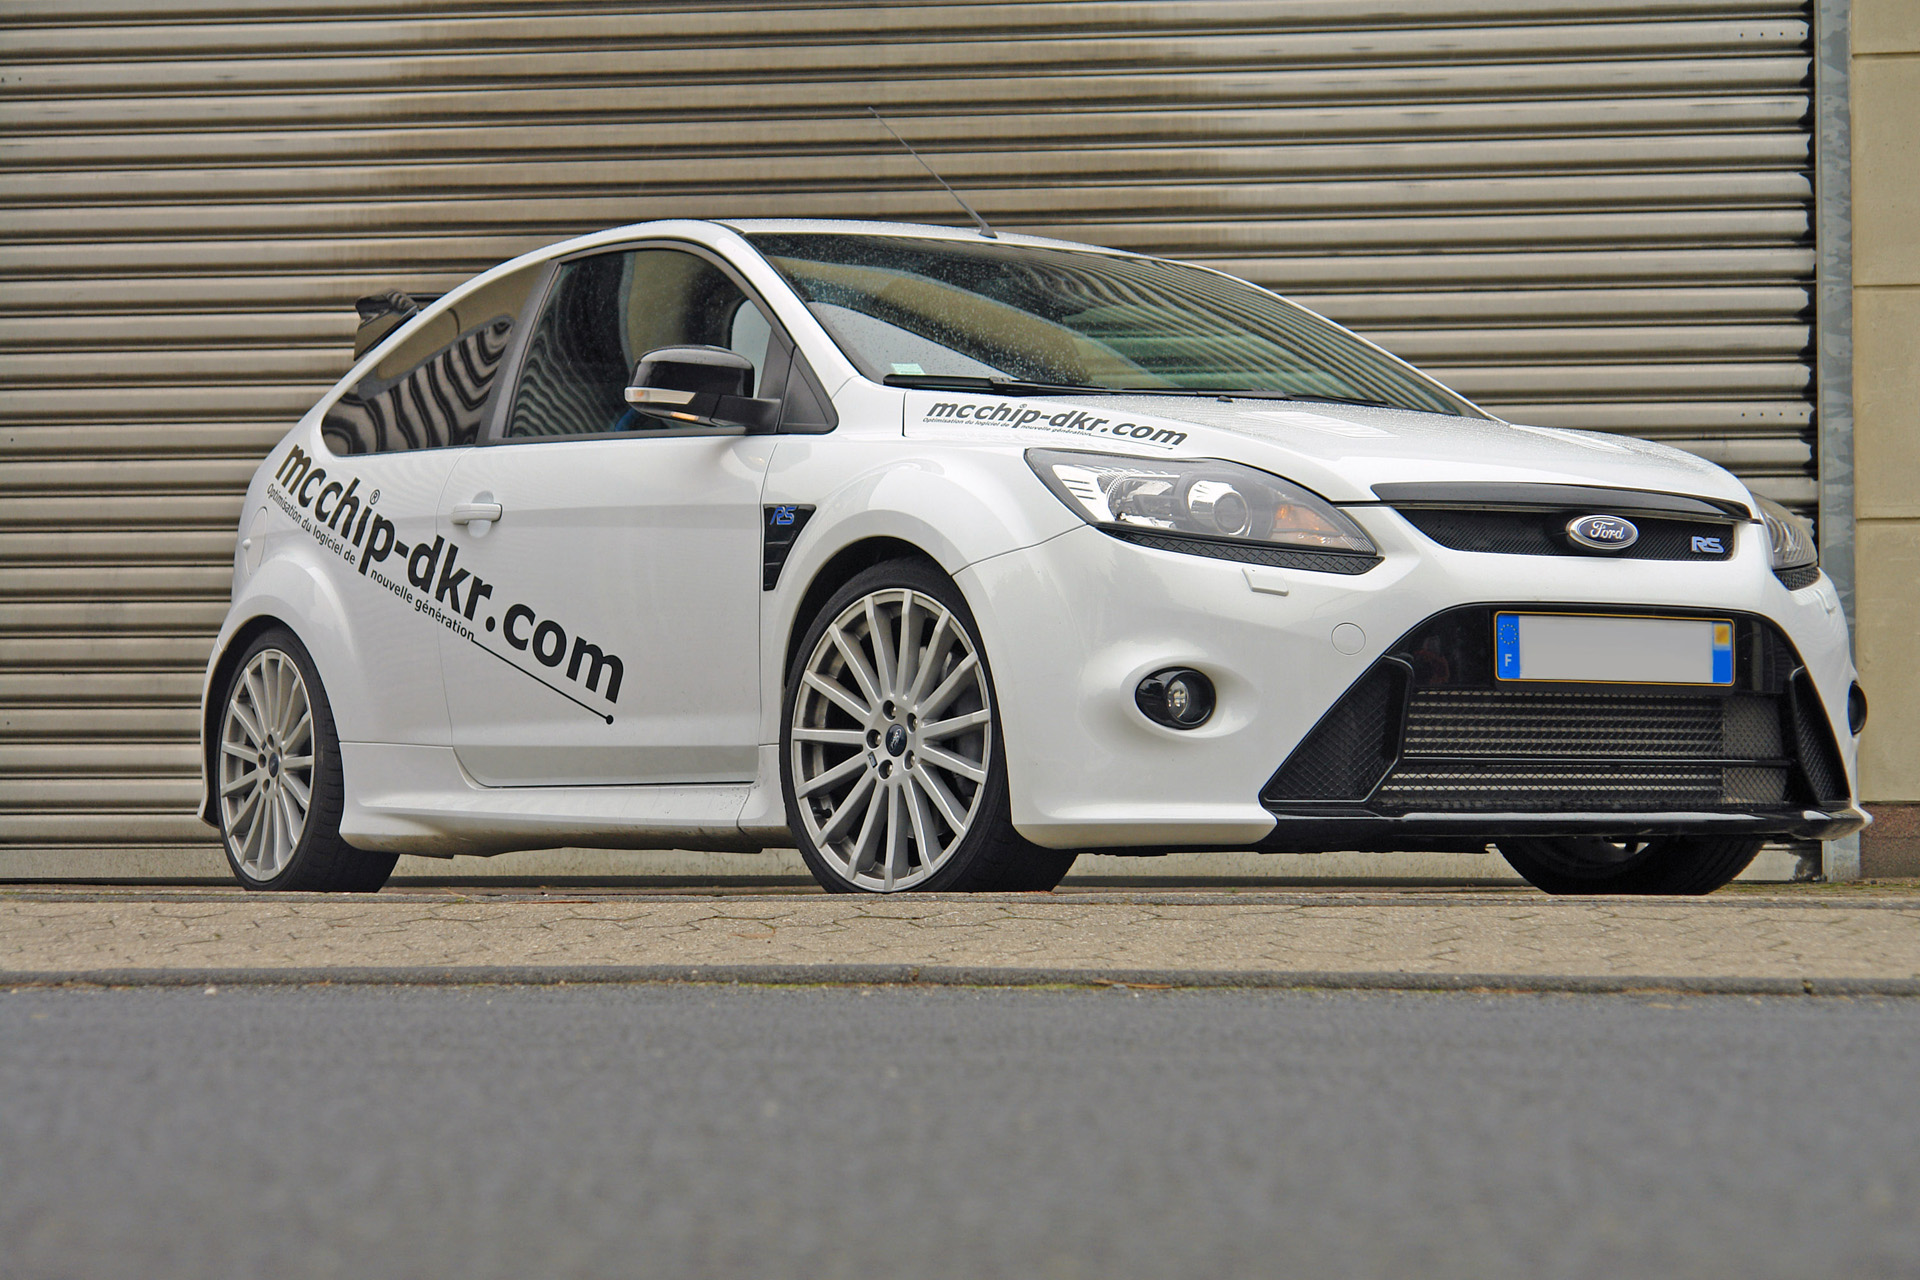 McChip-Dkr Ford Focus RS photo 70153